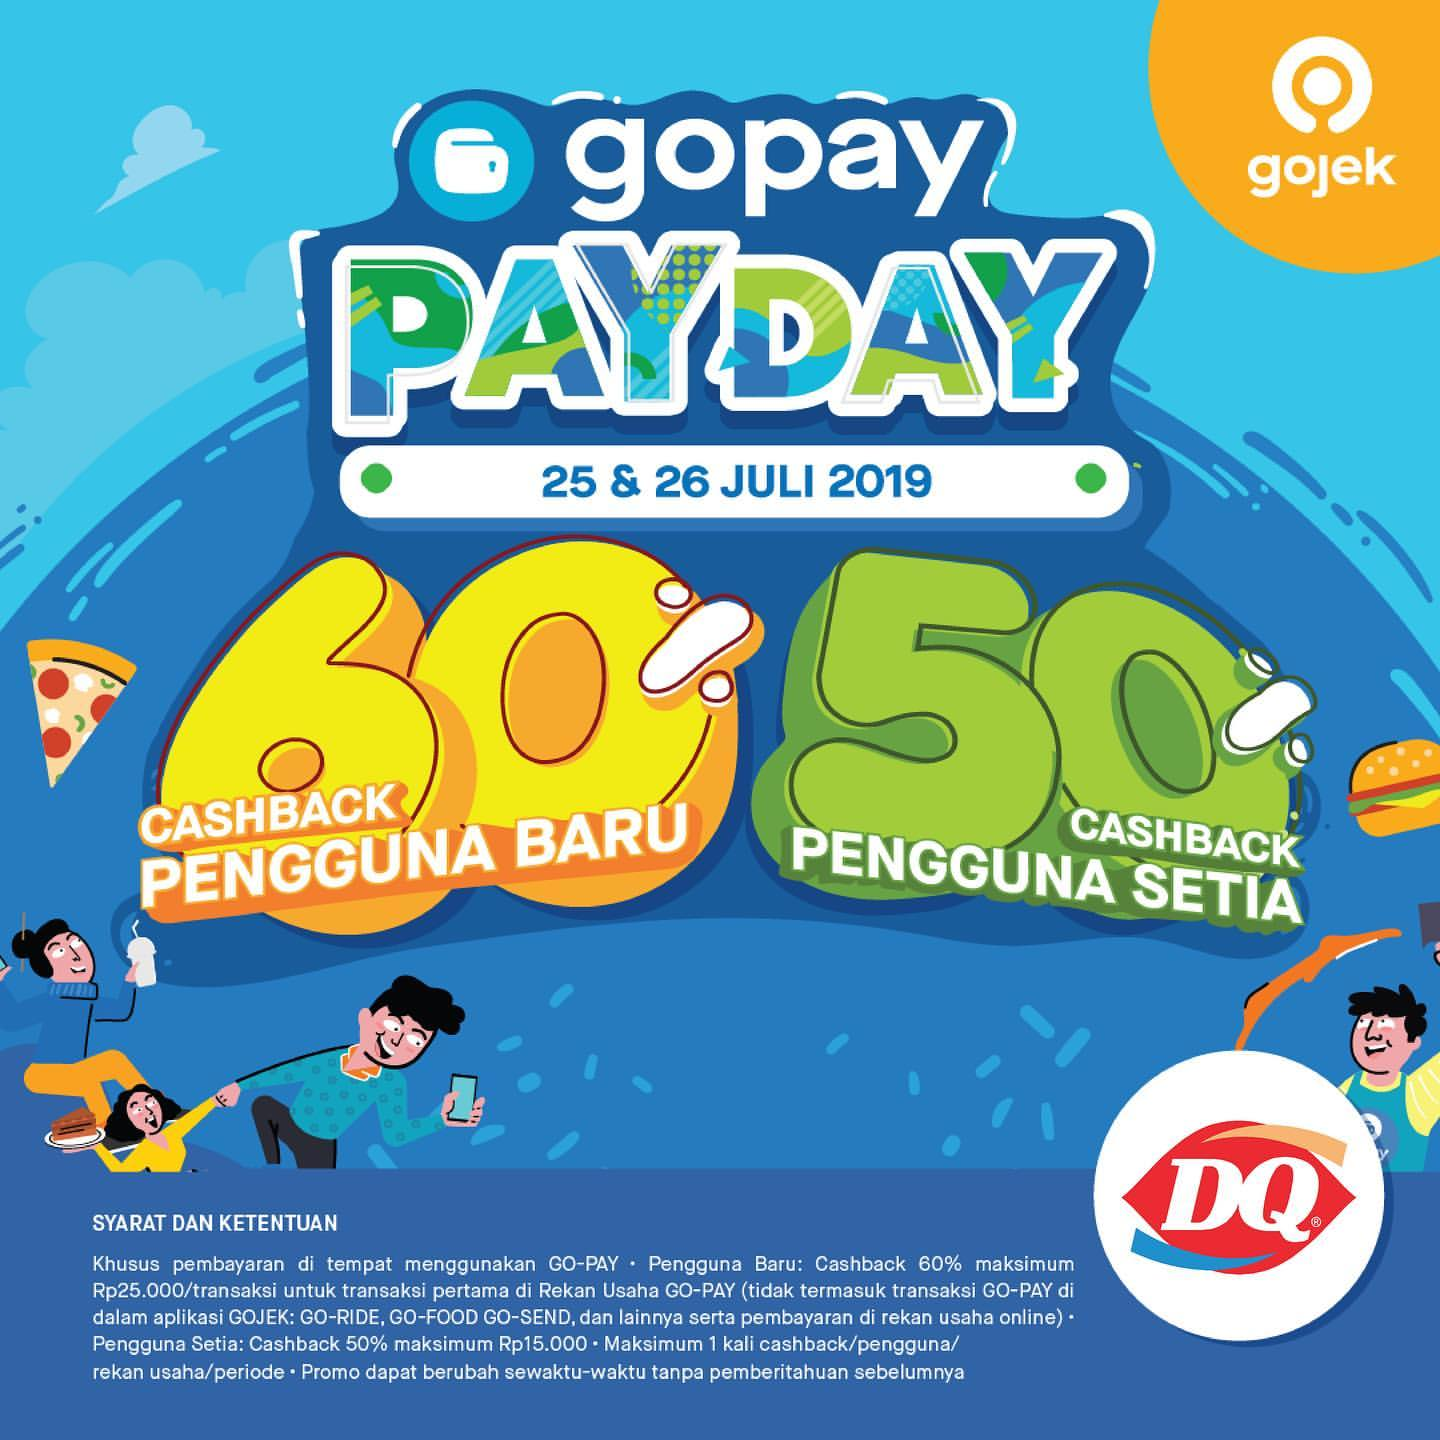 Dairy Queen Promo GOPAY PAYDAY, Cashback up to 60%!